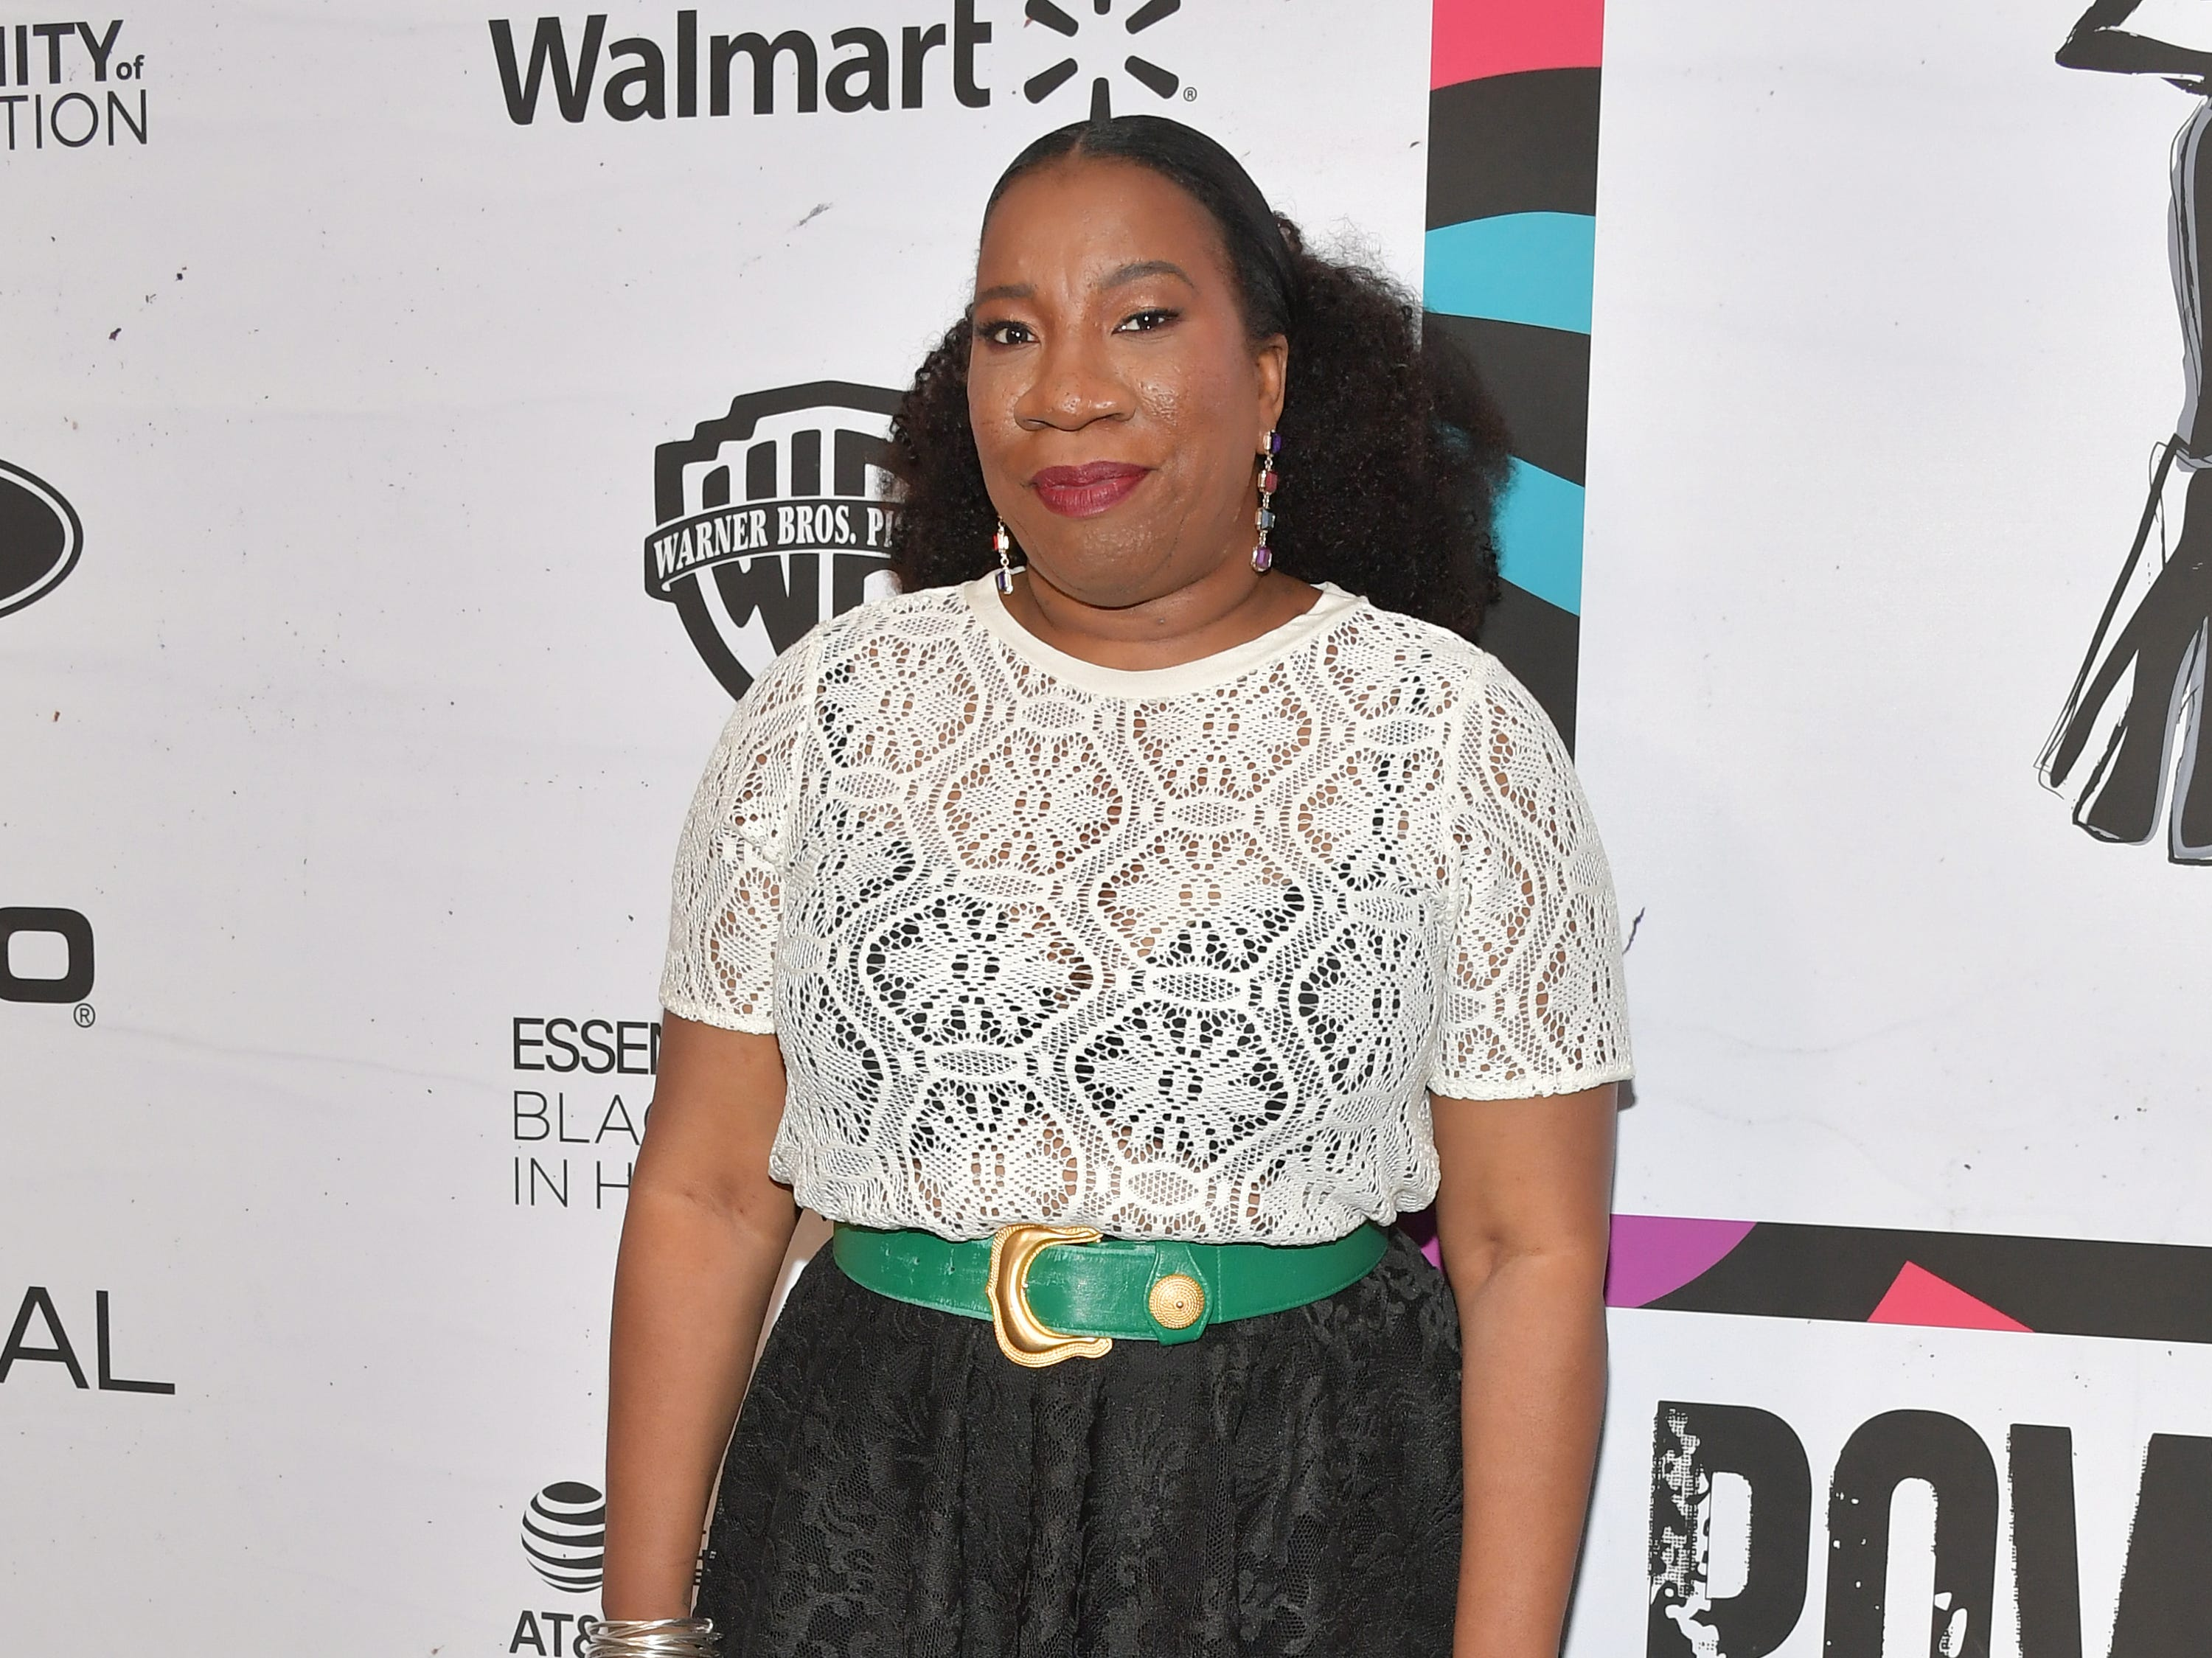 BEVERLY HILLS, CALIFORNIA - FEBRUARY 21: Tarana Burke attends 2019 Essence Black Women In Hollywood Awards at the Beverly Wilshire Four Seasons Hotel on February 21, 2019 in Beverly Hills, California. (Photo by Amy Sussman/Getty Images) ORG XMIT: 775282713 ORIG FILE ID: 1131256979